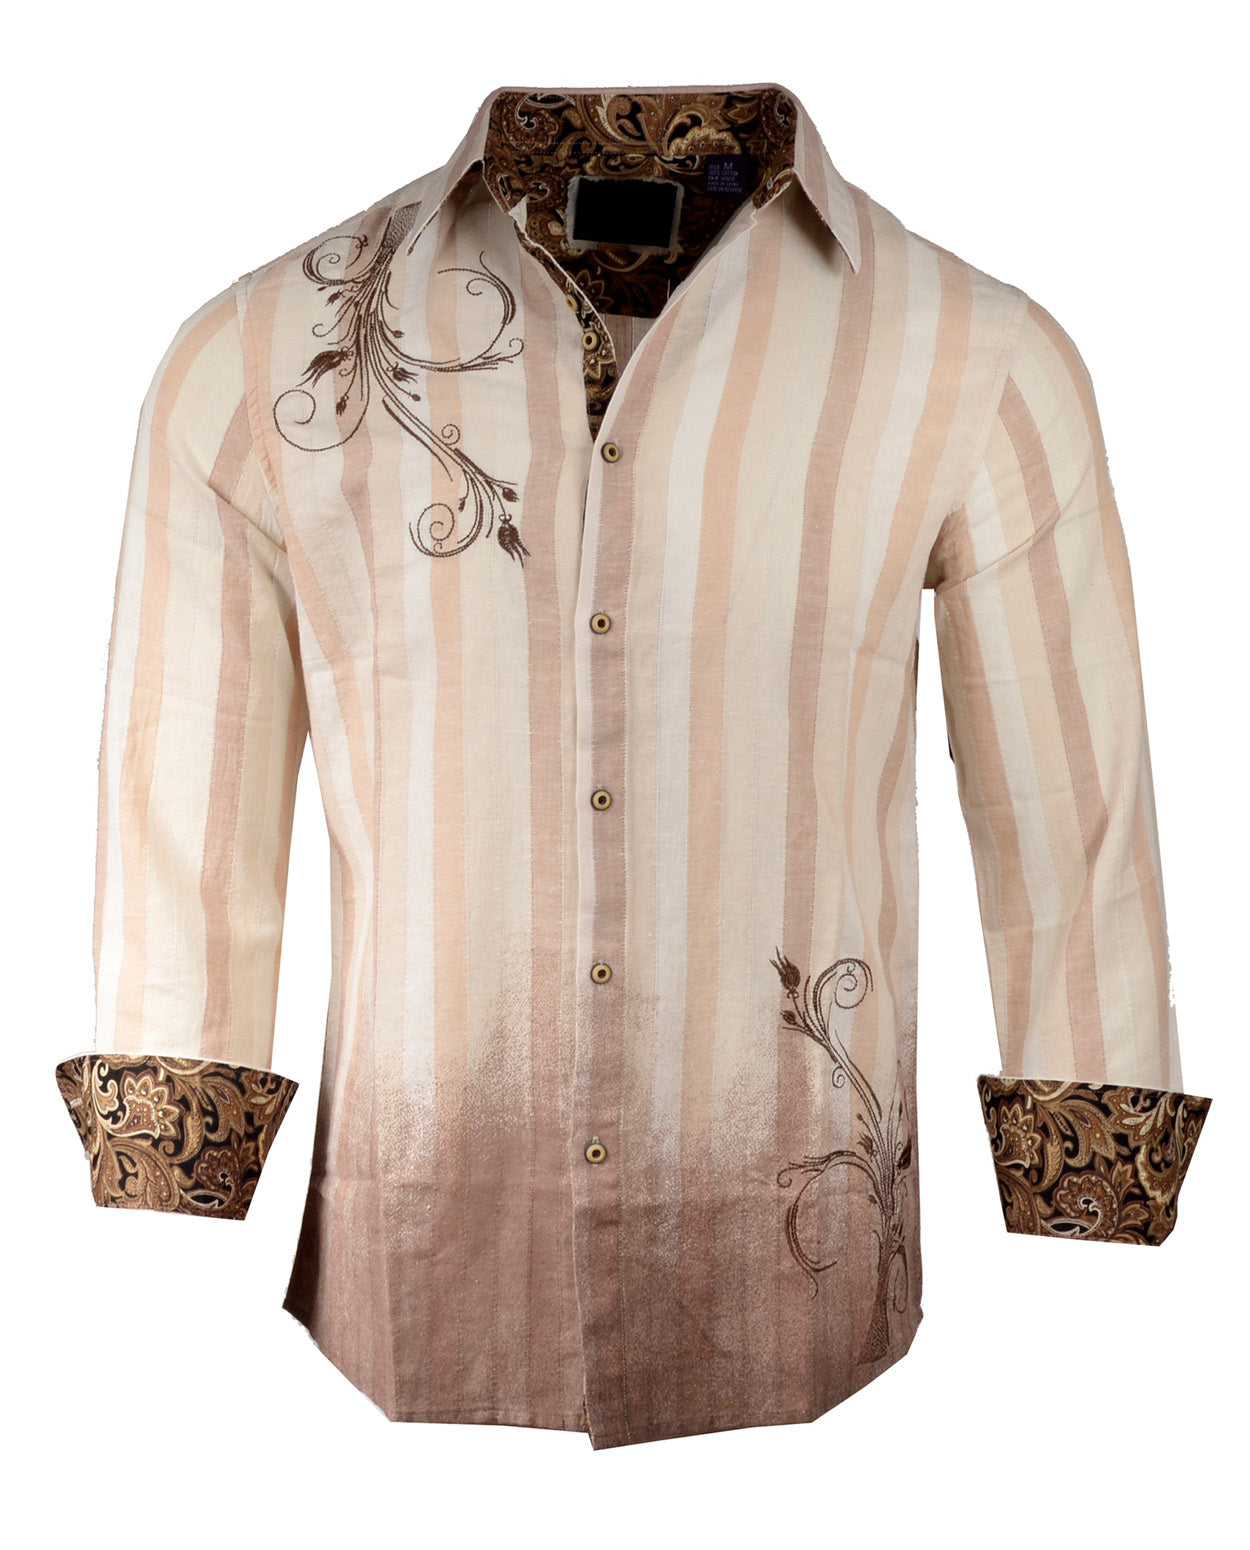 Men's Casual Fashion Button Up Shirt - 'Touch Me' Dip dyed Beige by Rock Roll n Soul